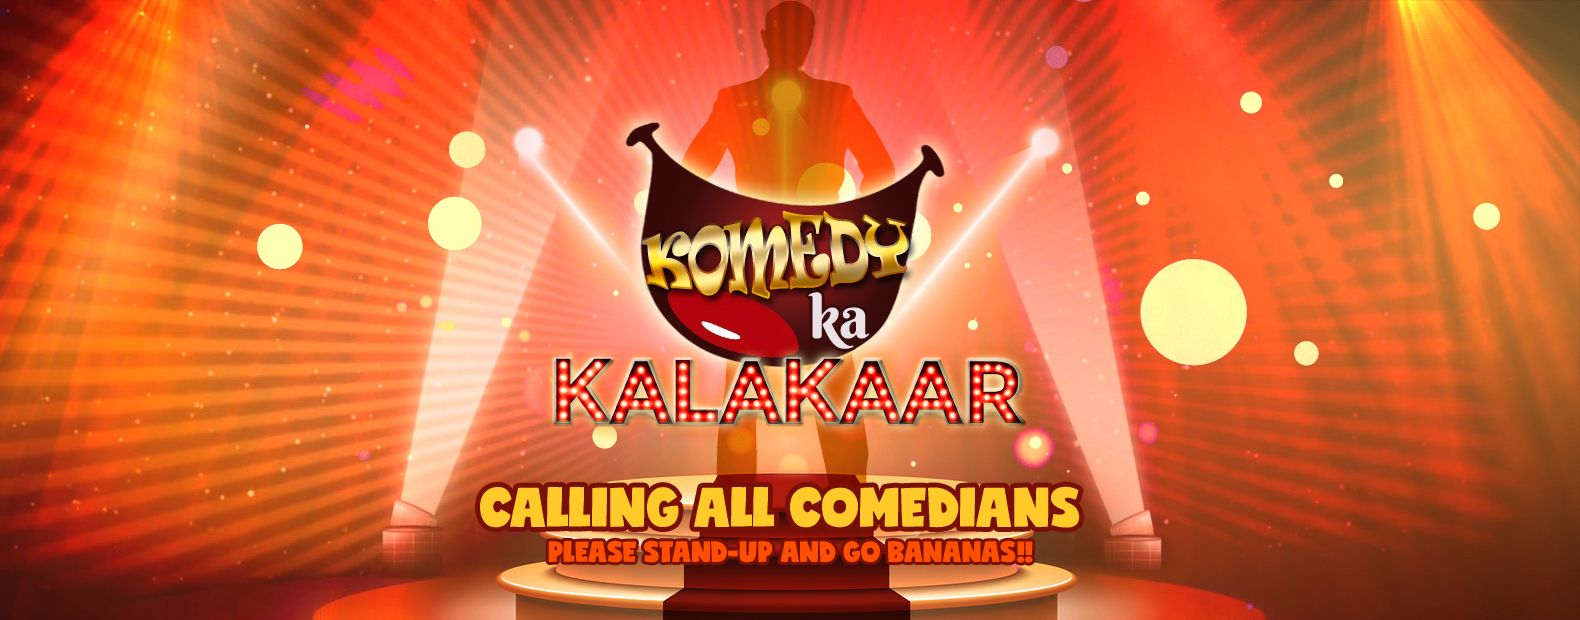 KOMEDY KA KALAKAAR, CALLING ALL COMEDIANS.